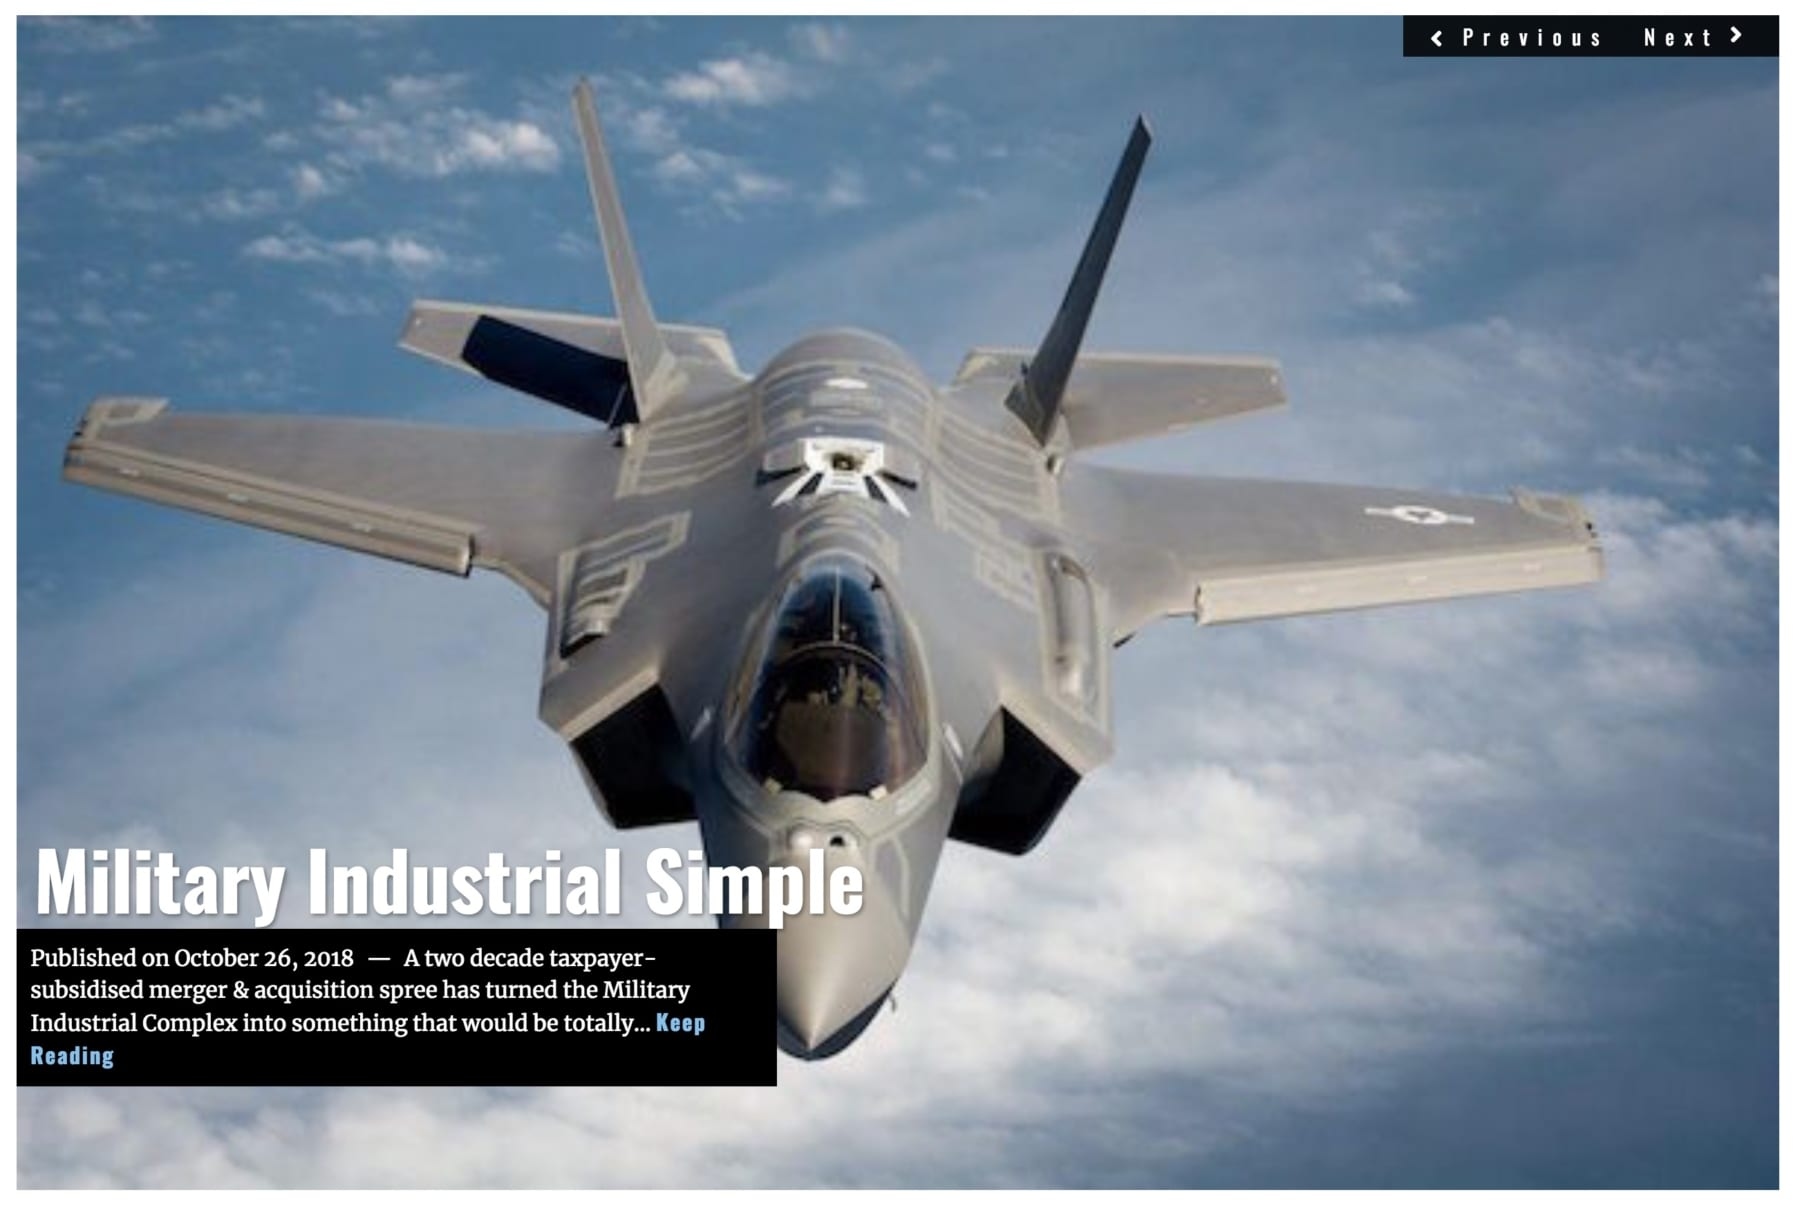 Image Lima Charlie News Headline Military Industrial Simple OCT 26 2018